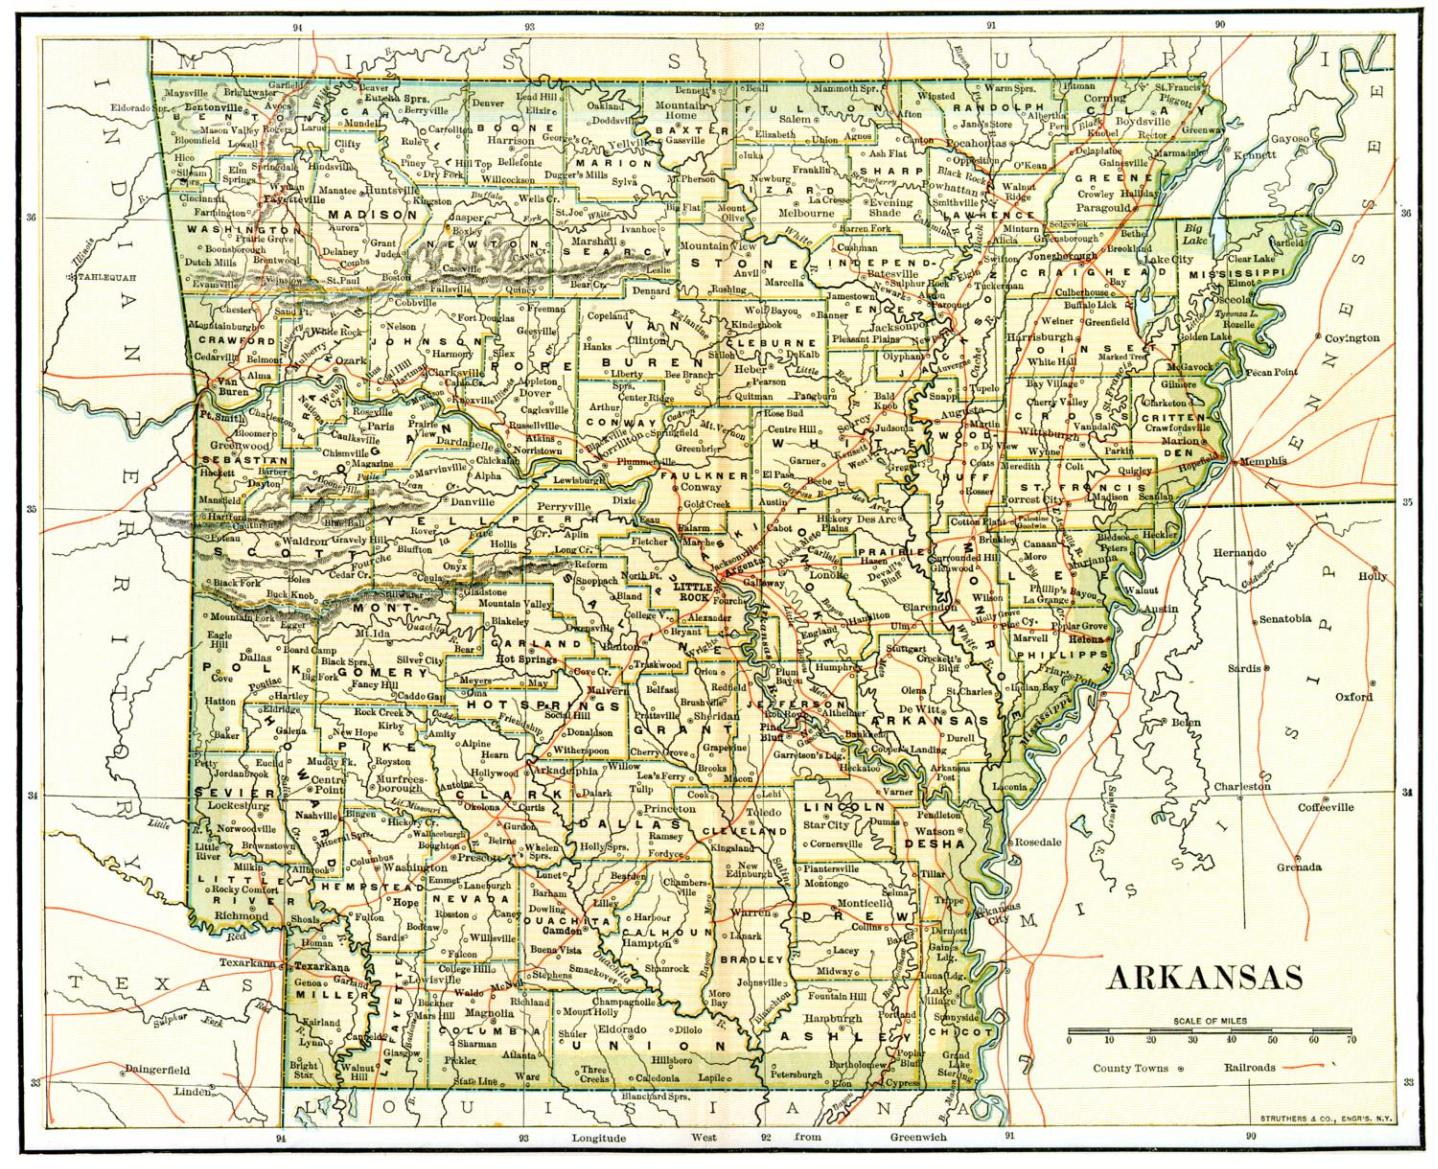 arkansas maps arkansas digital map library table of contents